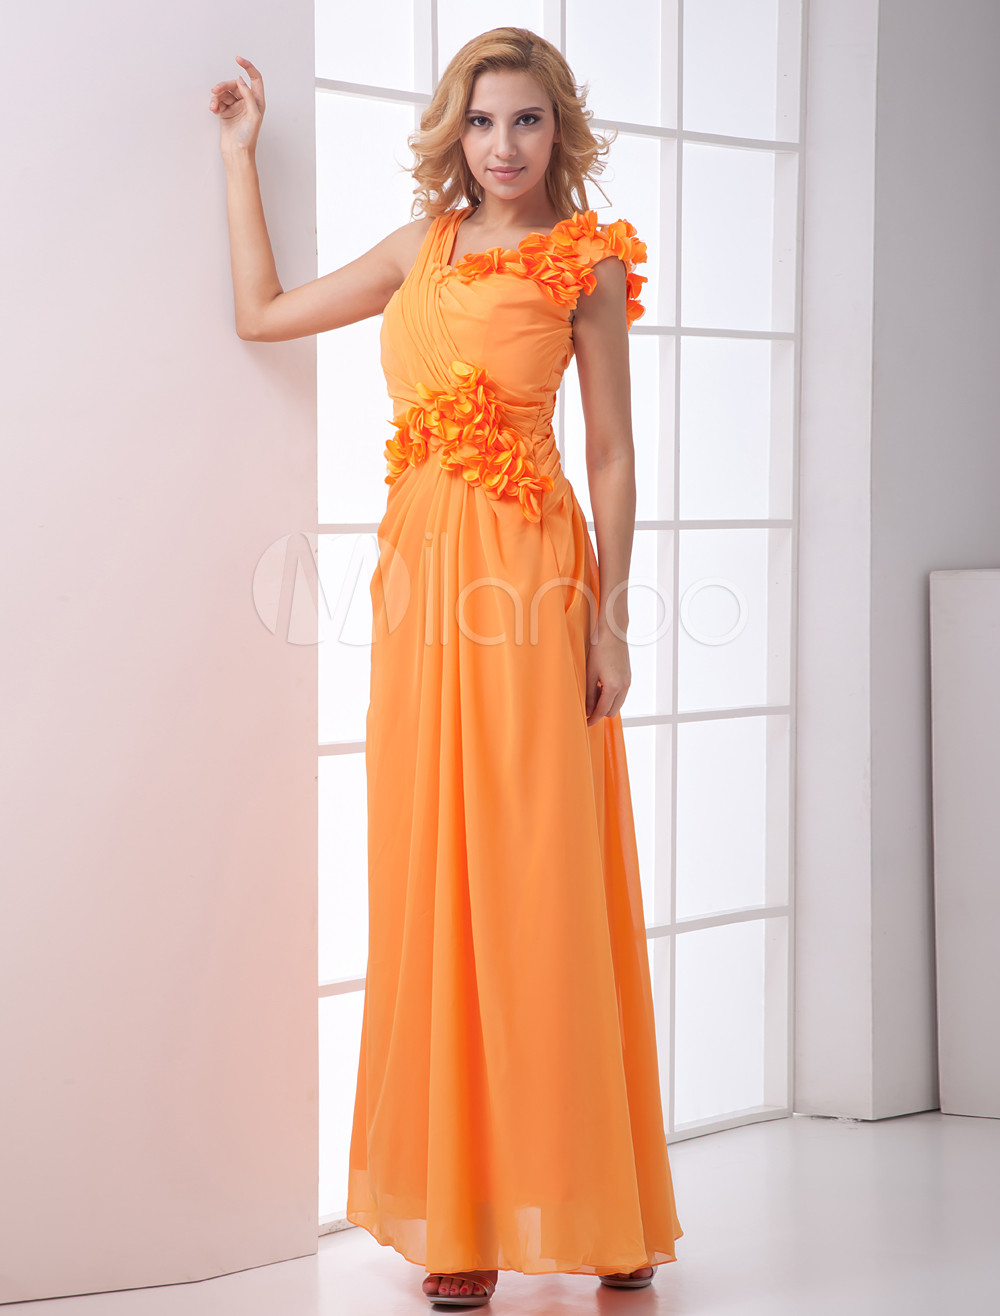 A-line Orange Chiffon Floral V-Neck Bridesmaid Dress